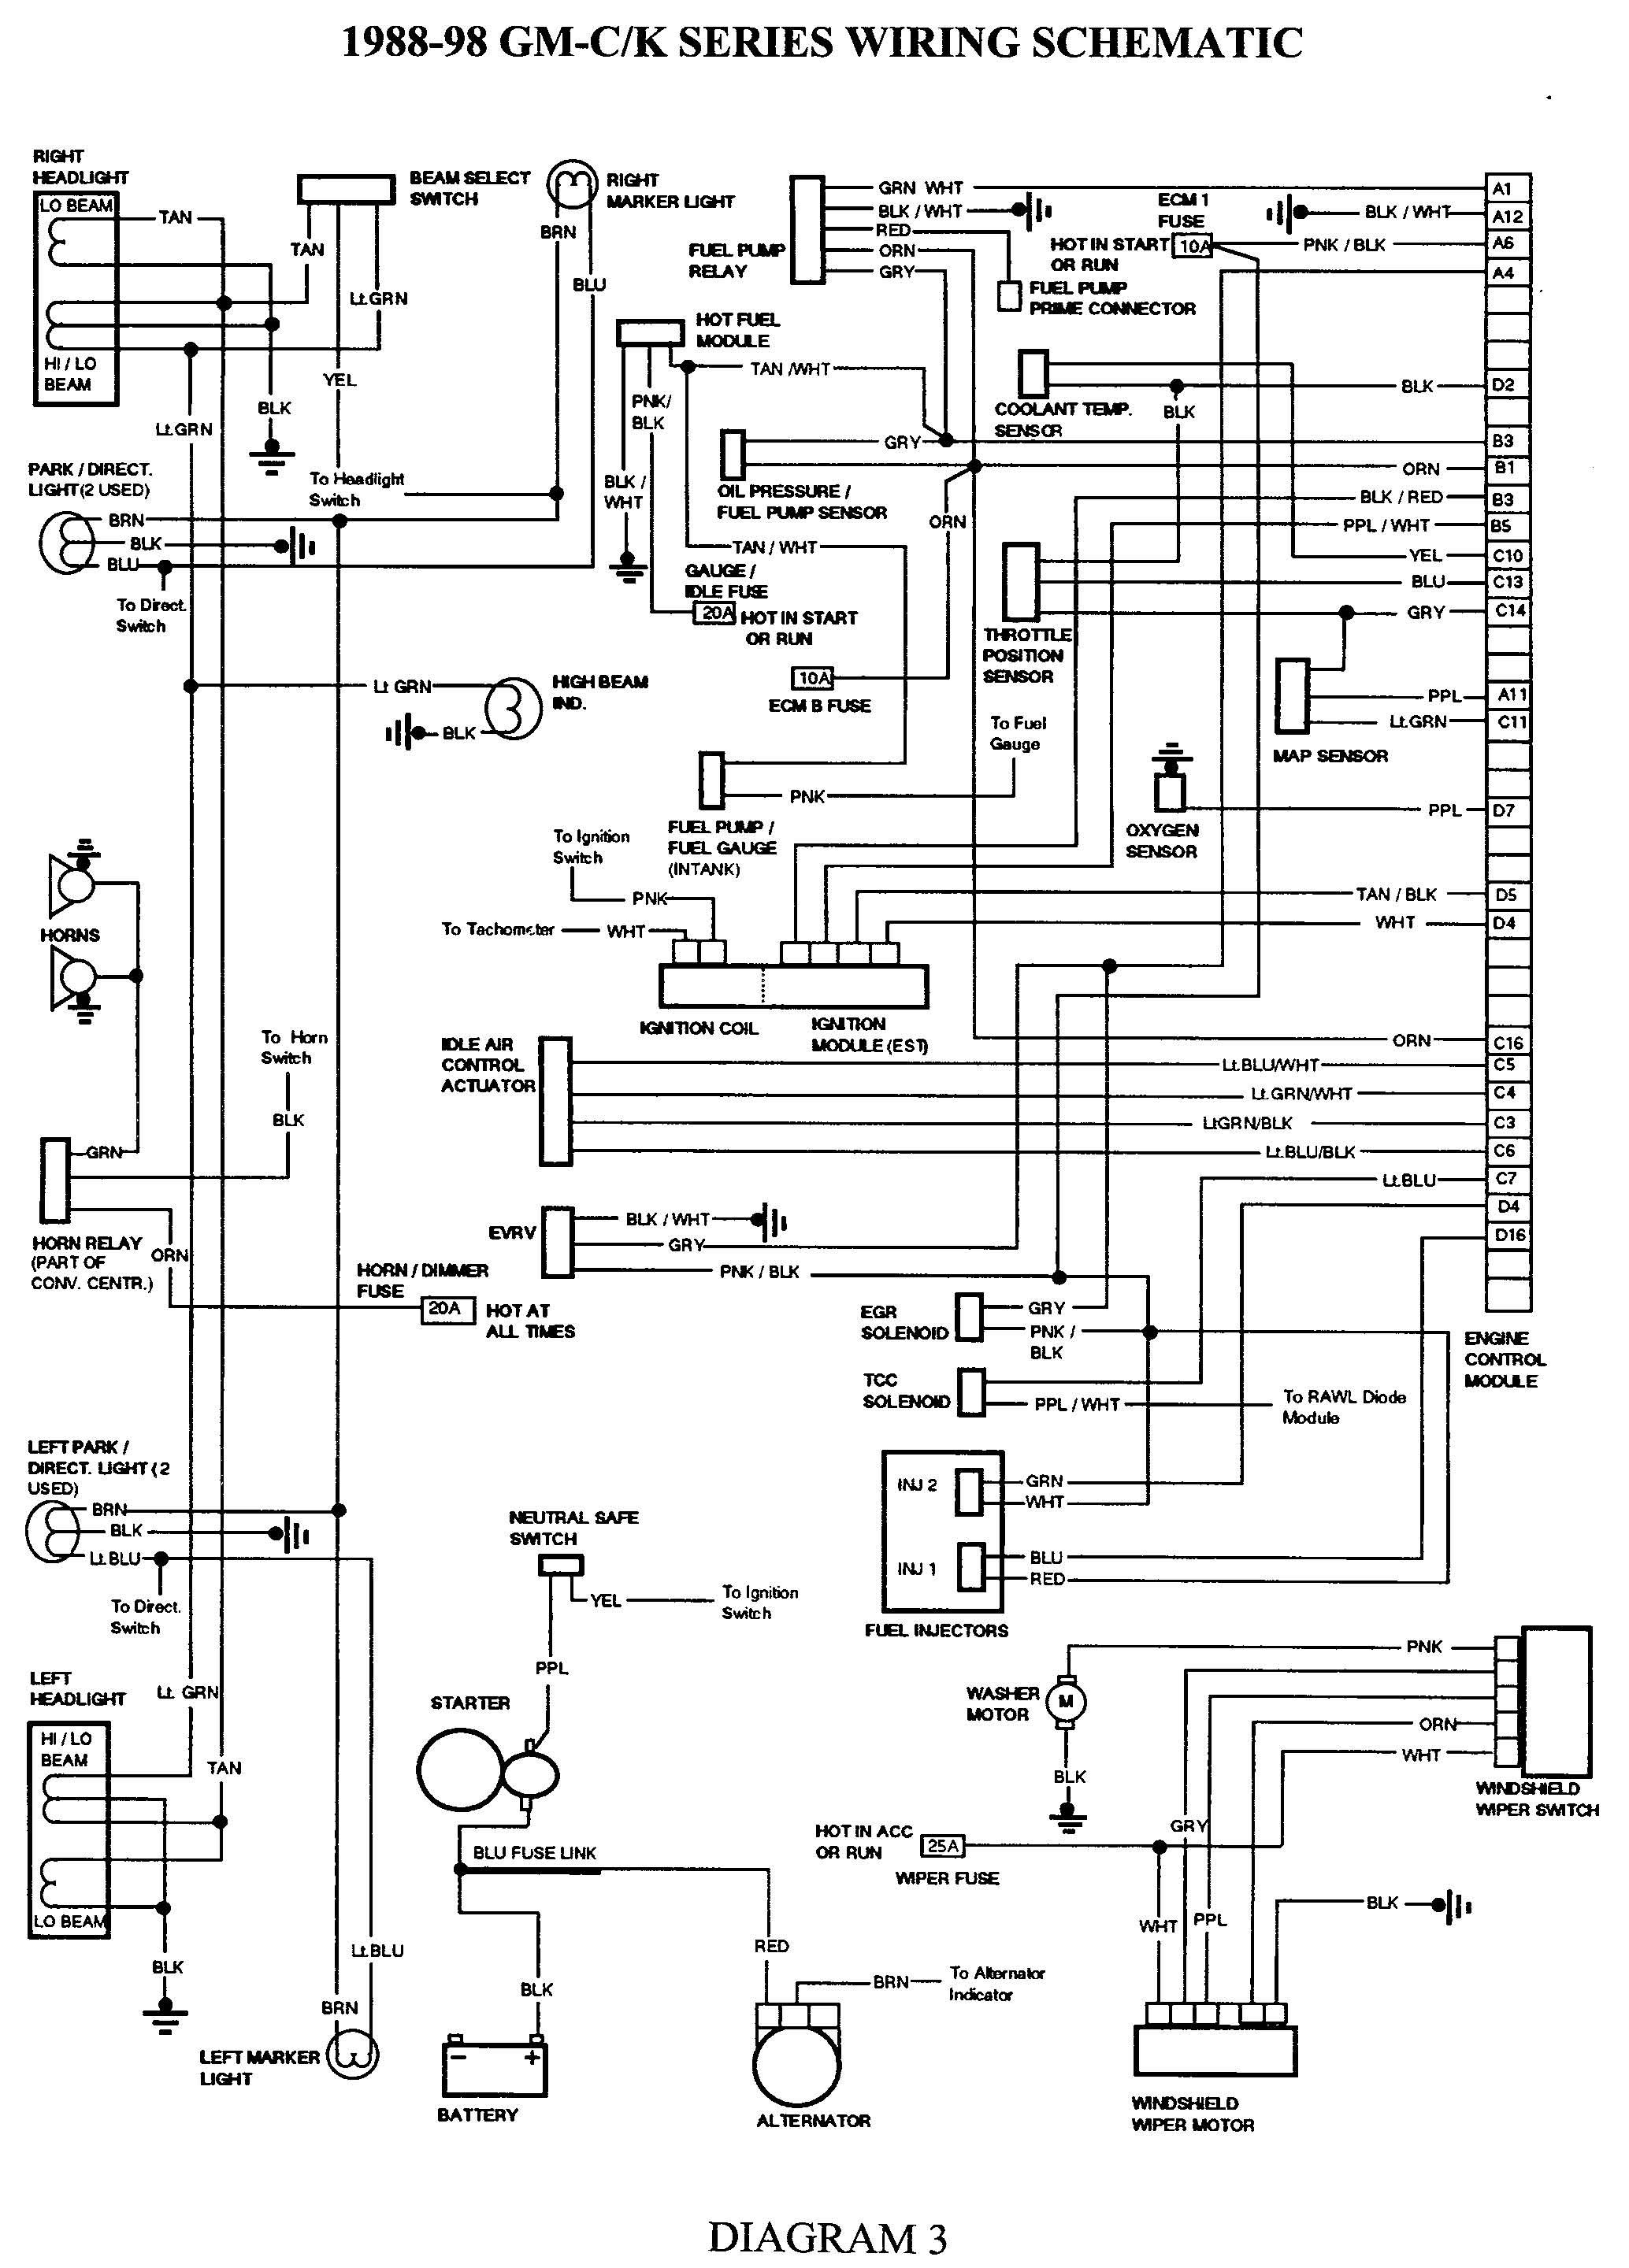 gmc truck wiring diagrams on gm wiring harness diagram 88 98 kc gmc truck wiring diagrams [ 2068 x 2880 Pixel ]